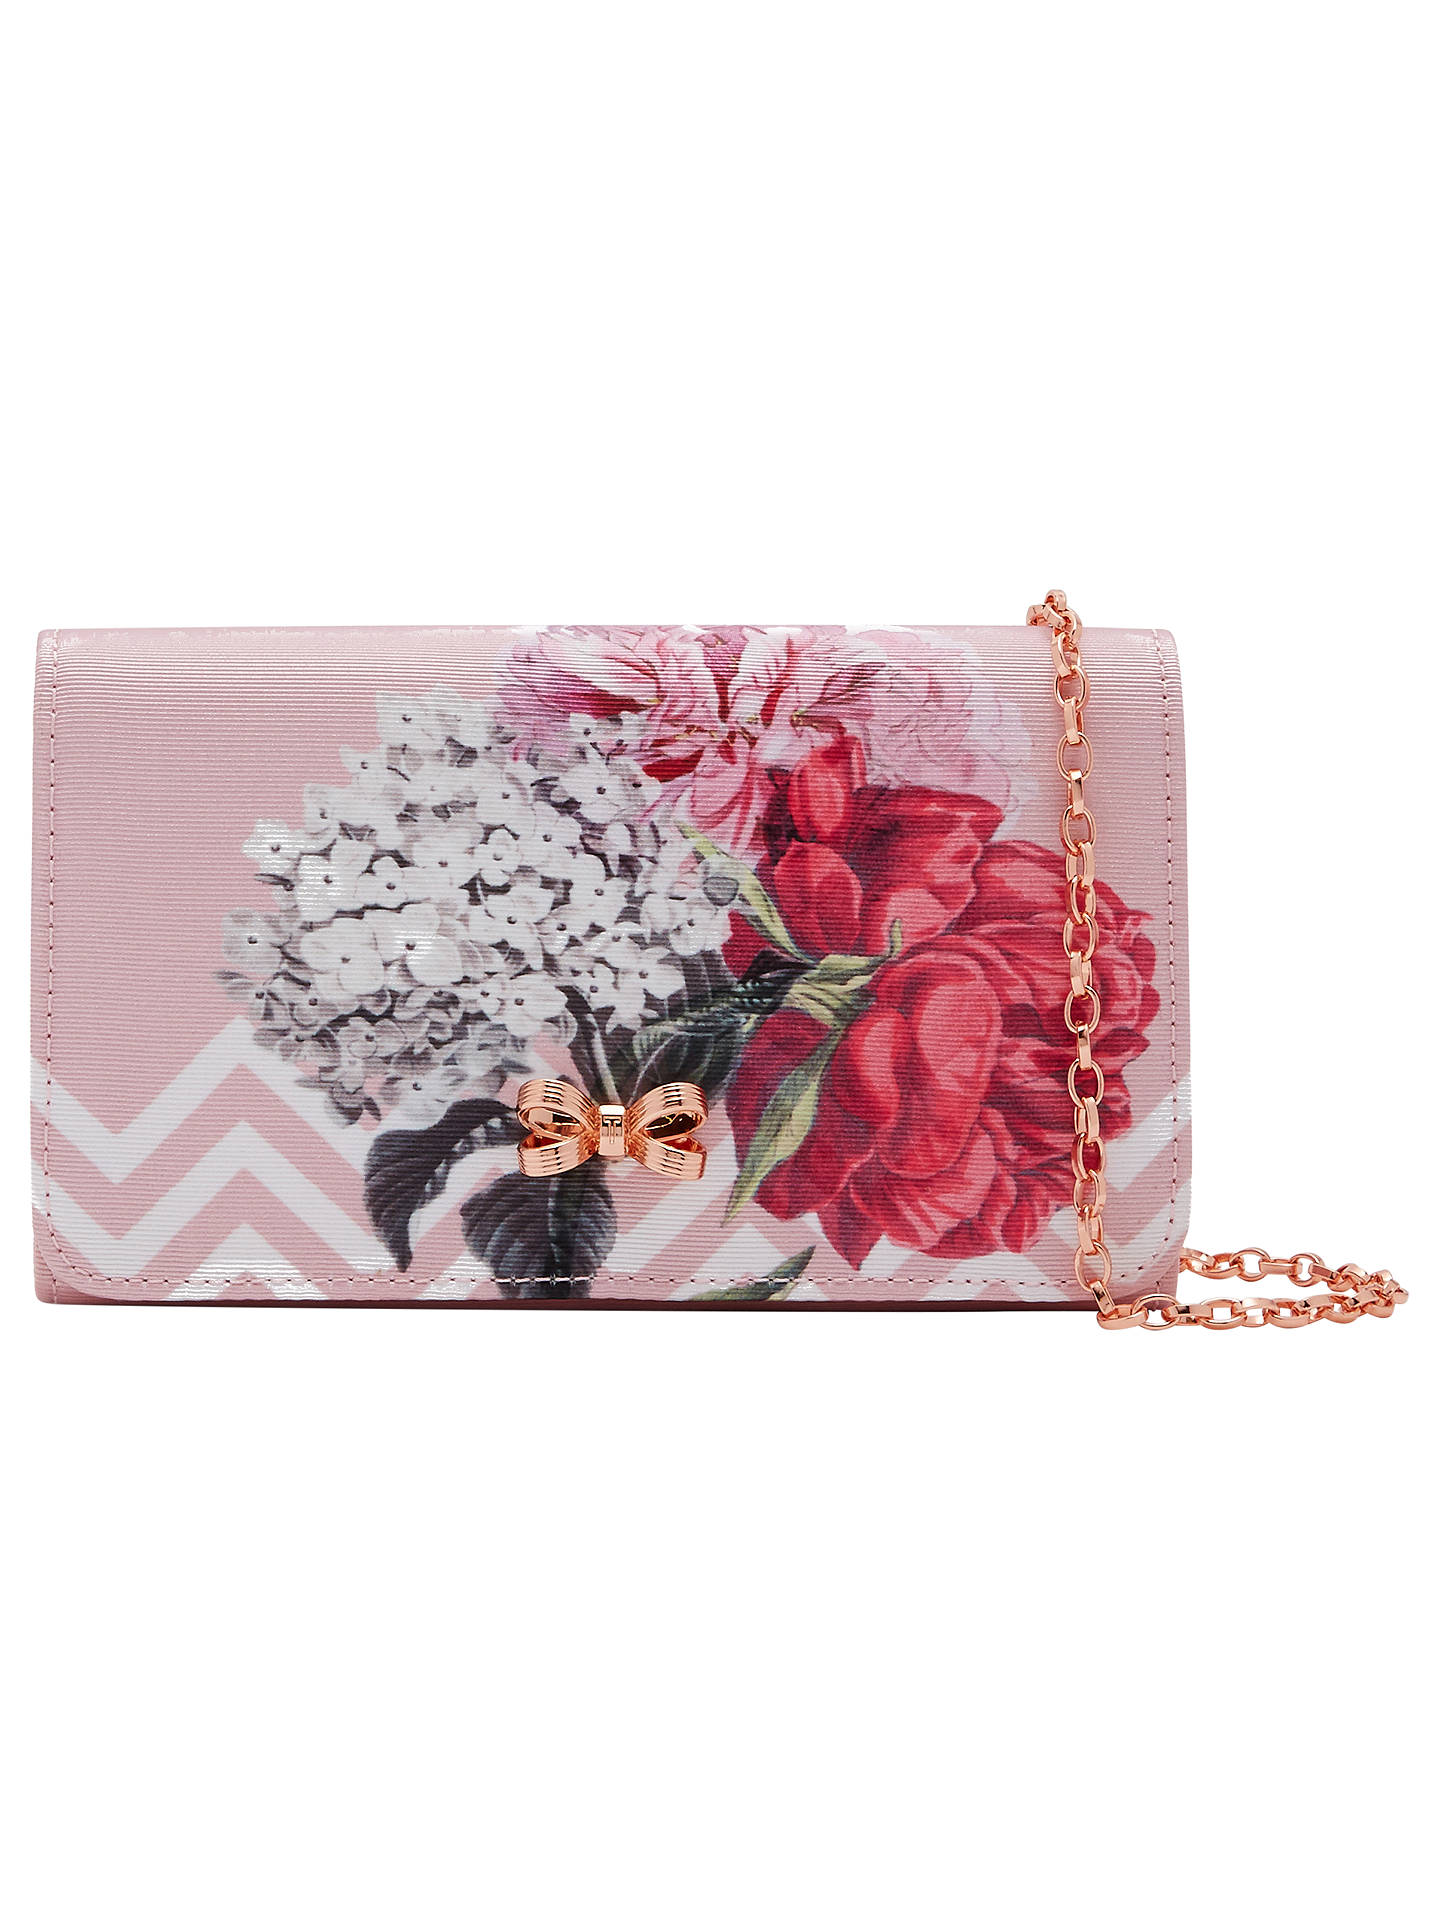 John Ted Bag Baker At Dusky Pink Clutch Palace Sophh Gardens